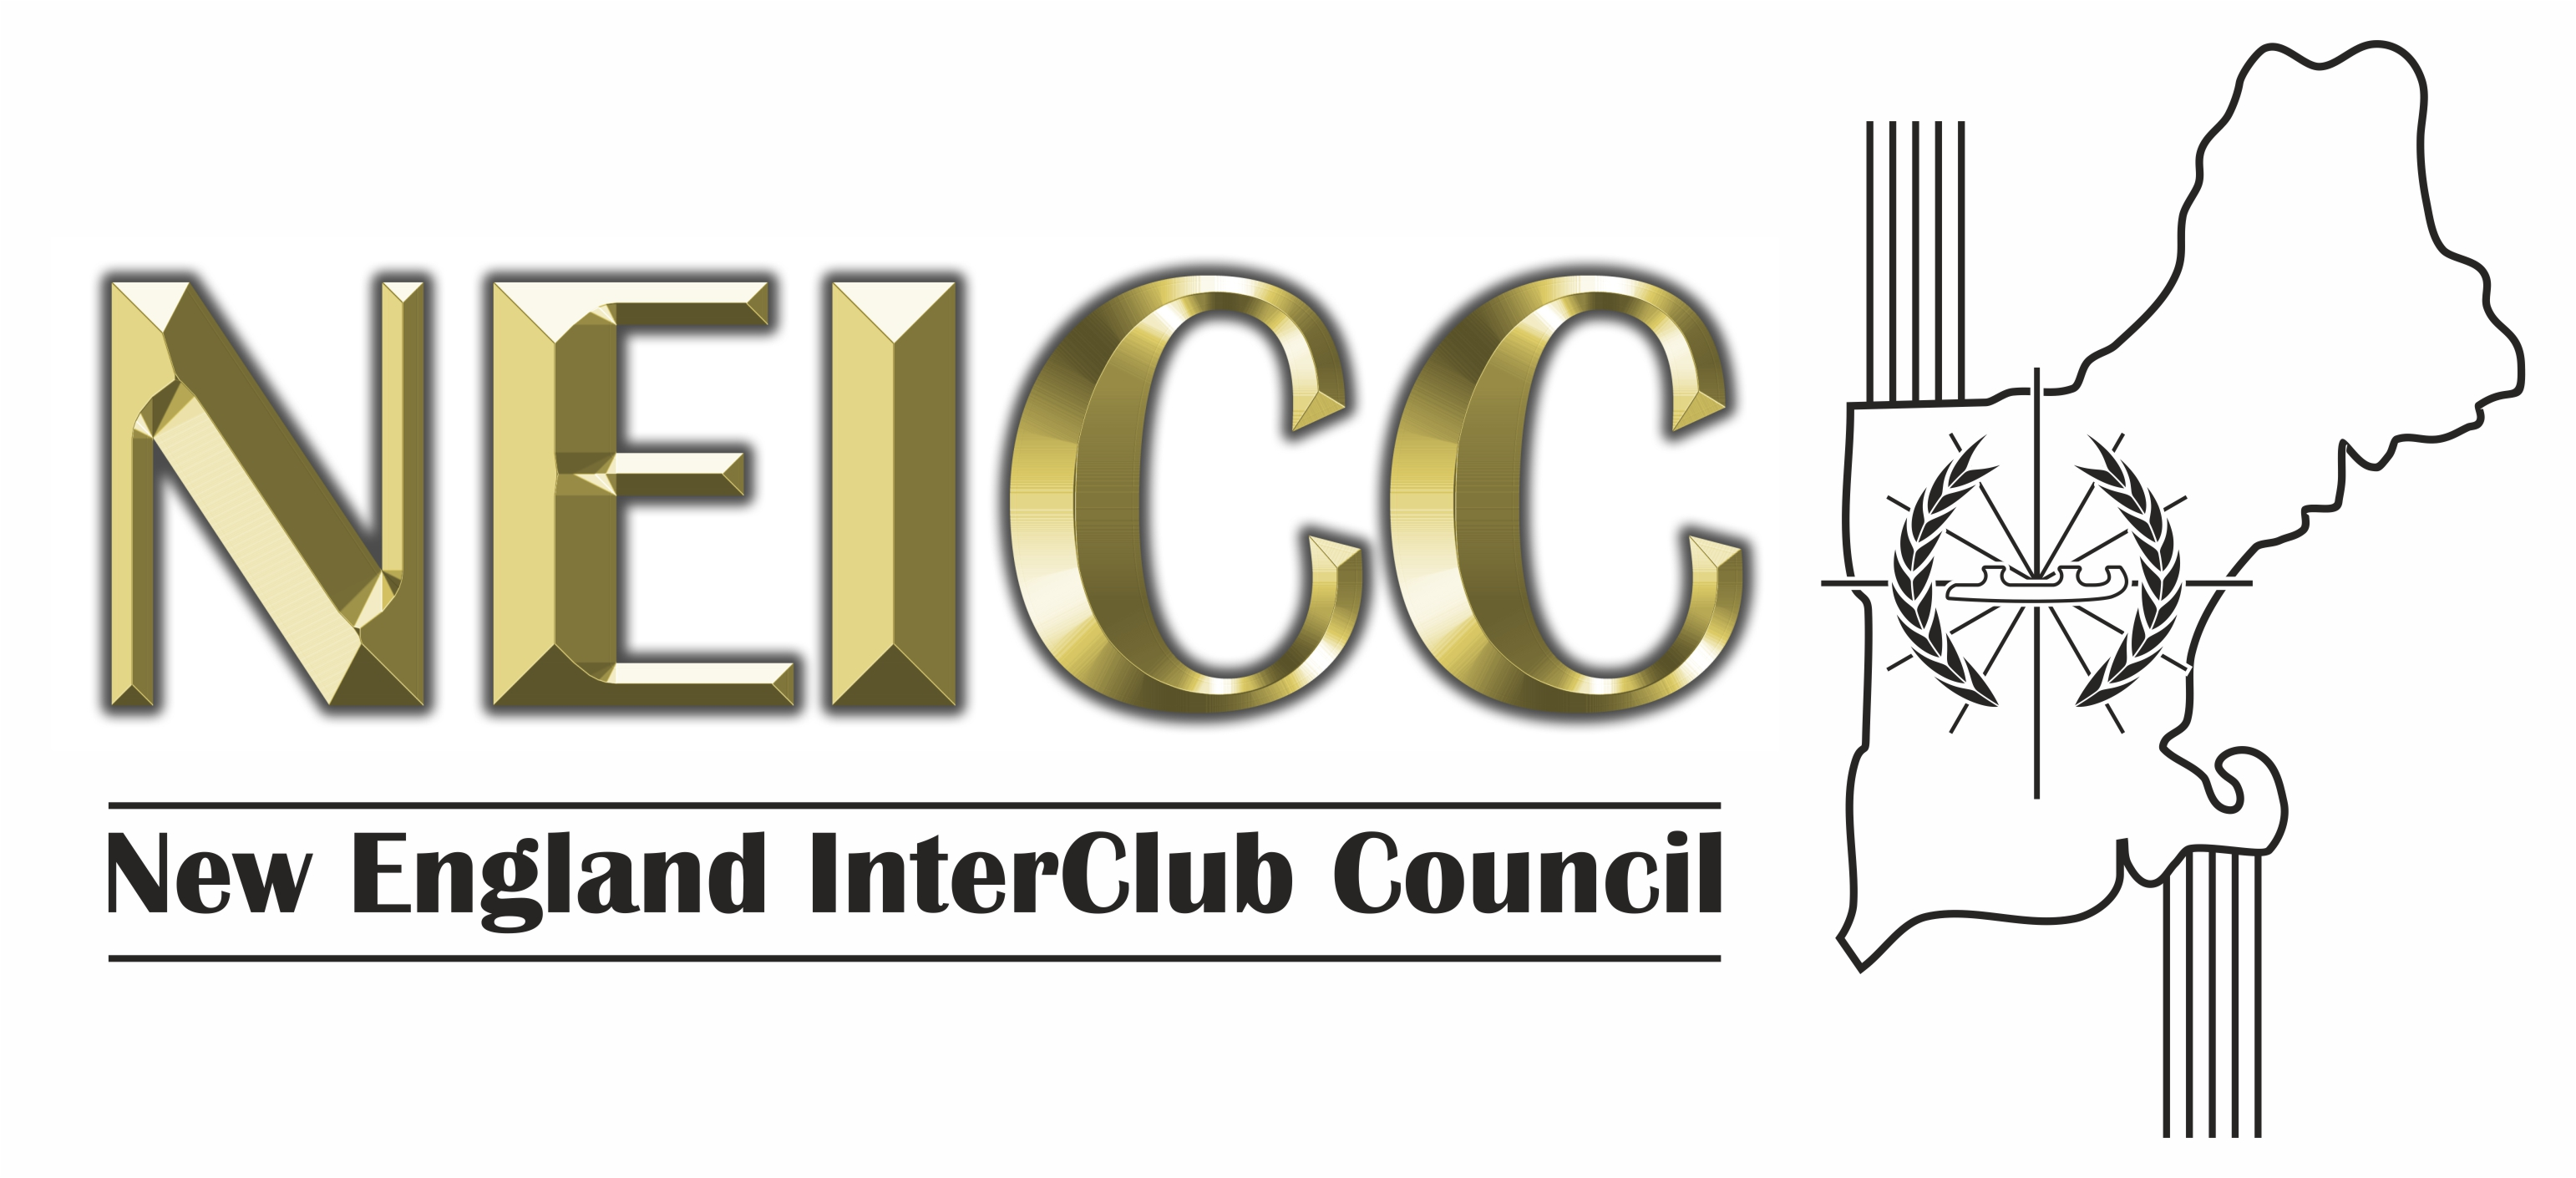 New England InterClub Council